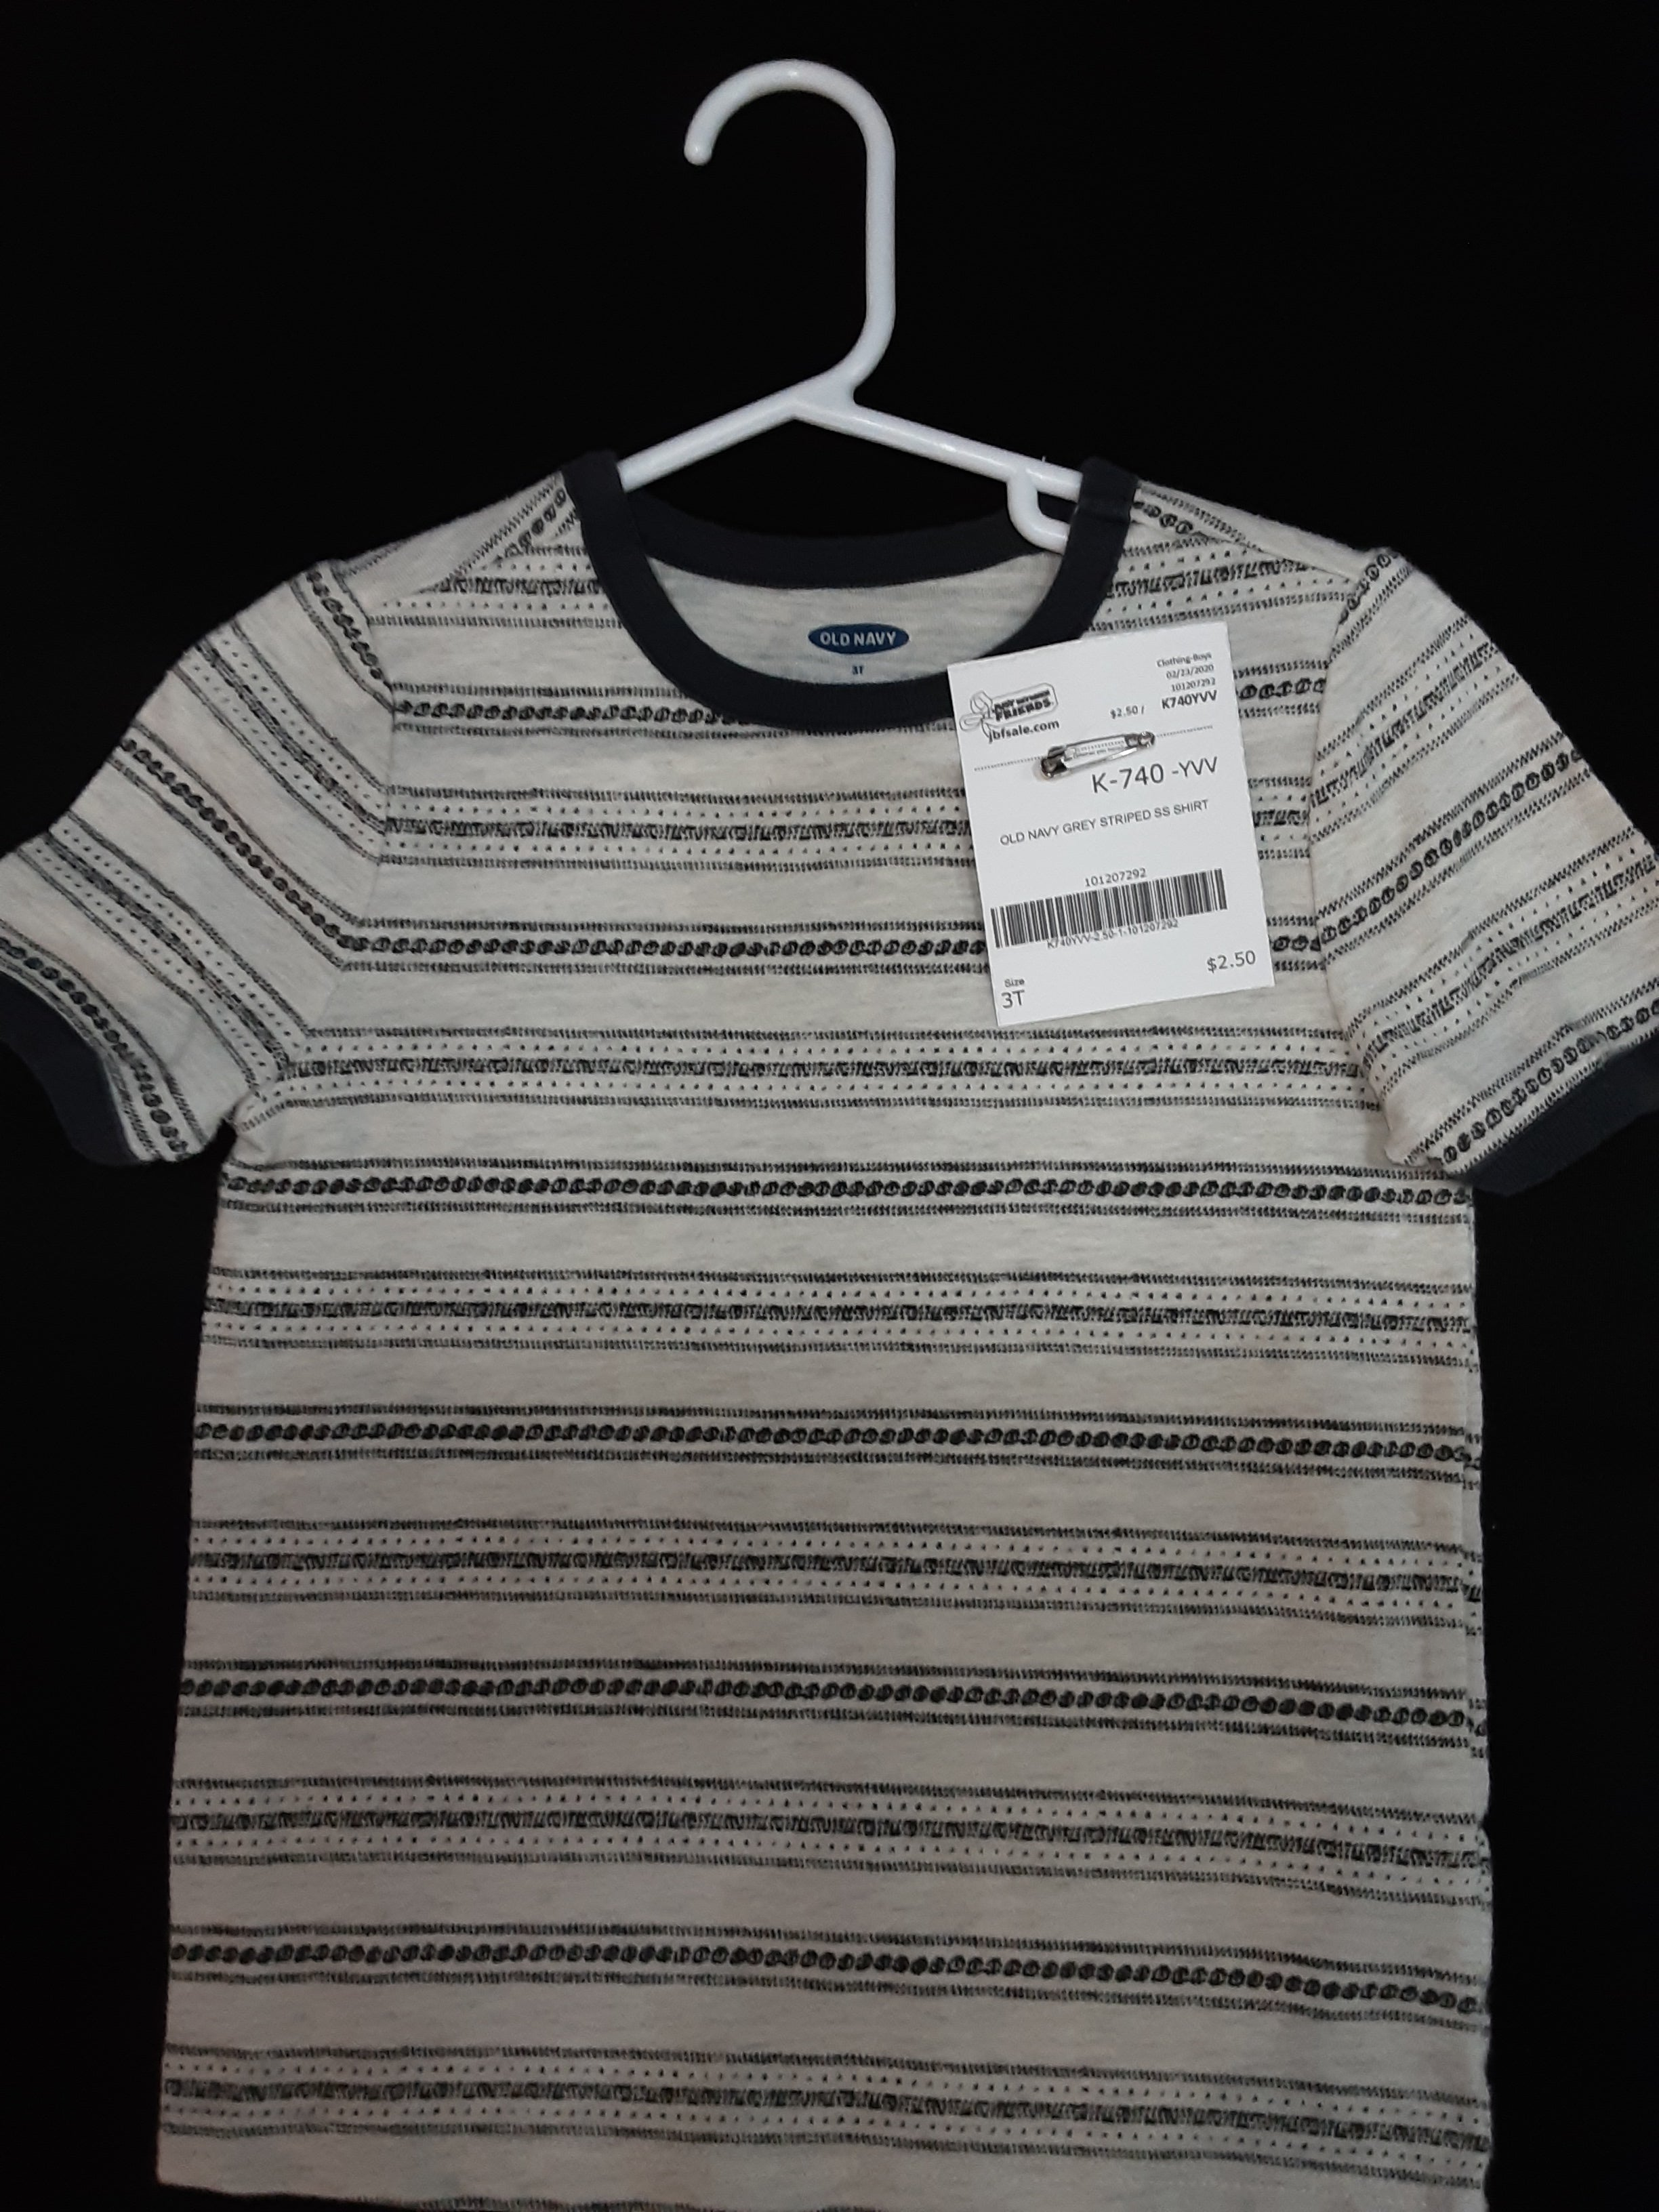 OLD Navy grey striped shirt Size 3T boys